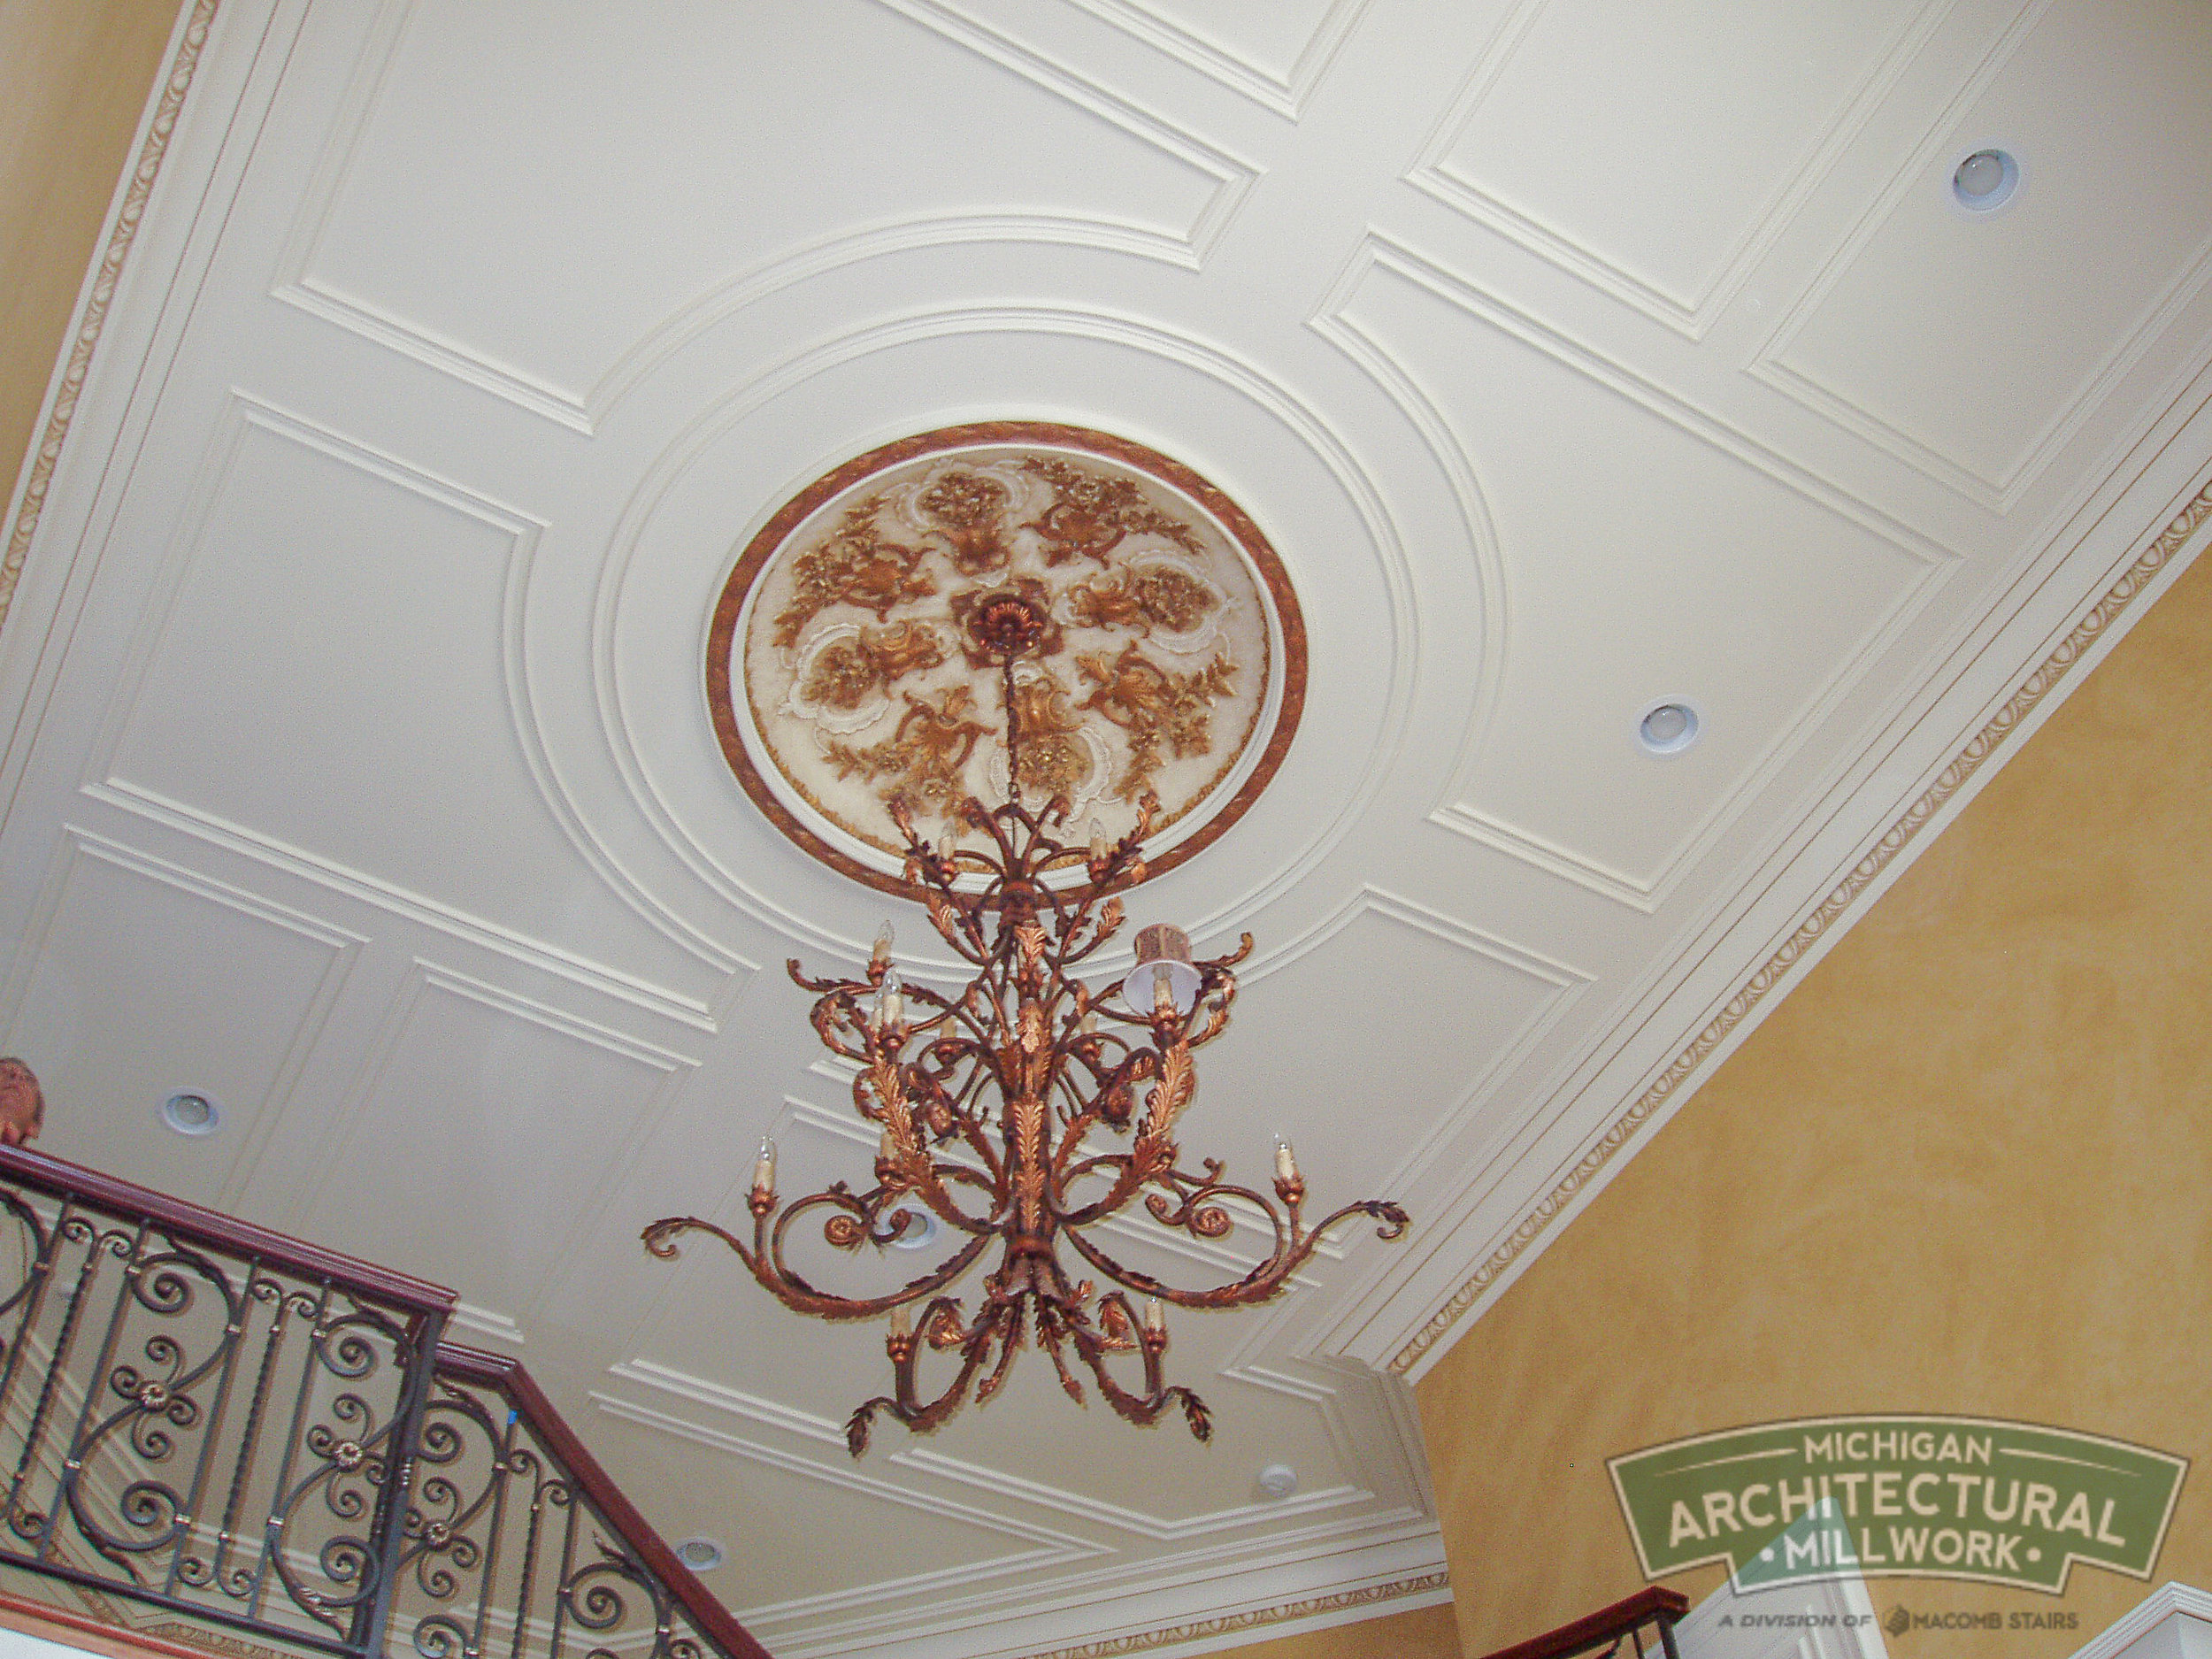 Michigan Architectural Millwork- Moulding and Millwork Photo-175.jpg